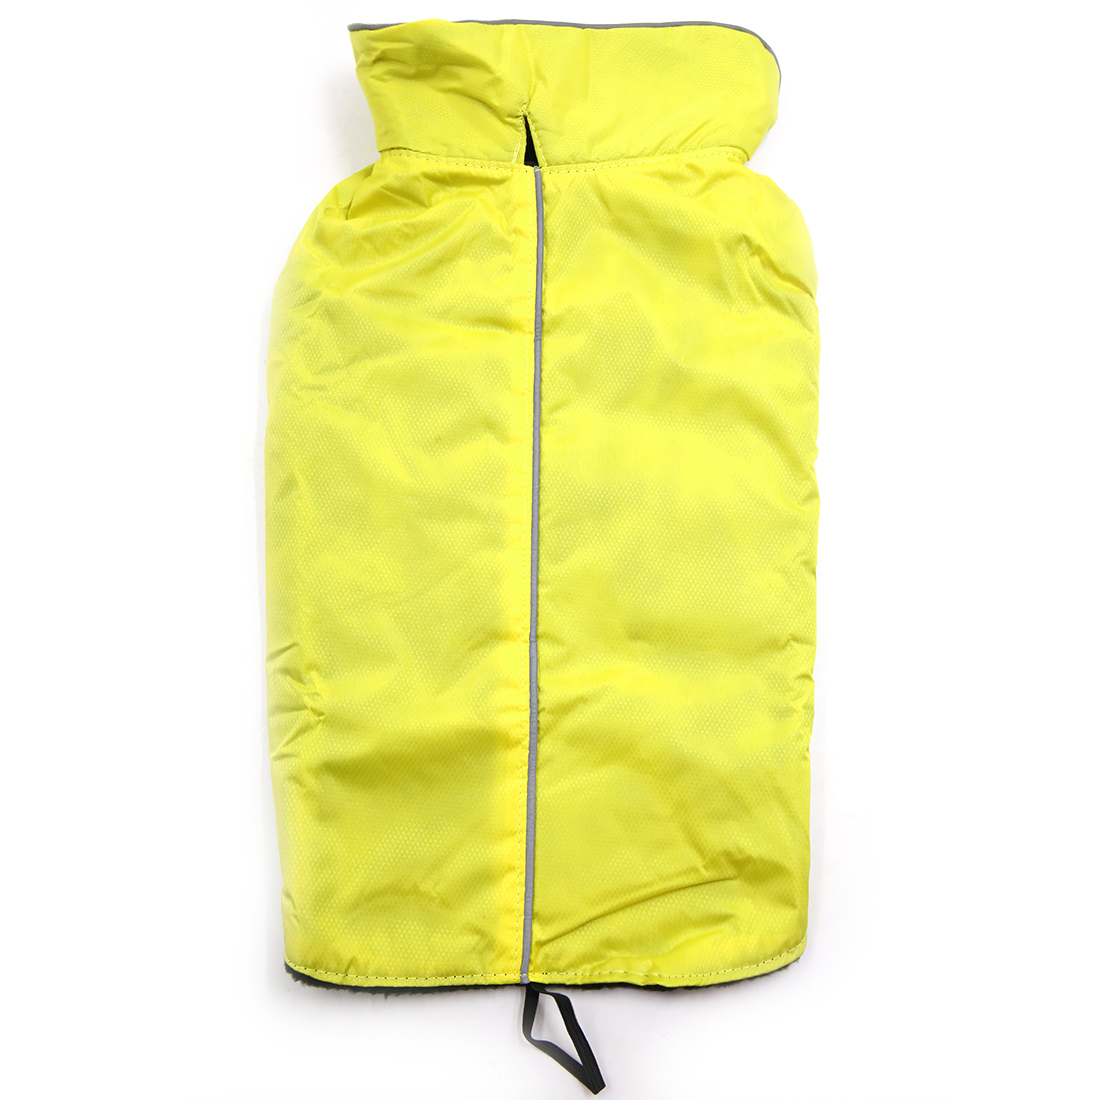 Reflective Waterproof Dog Vest Jacket Clothes Soft Warm Fleece Lining Dog Coat Clothing Yellow M